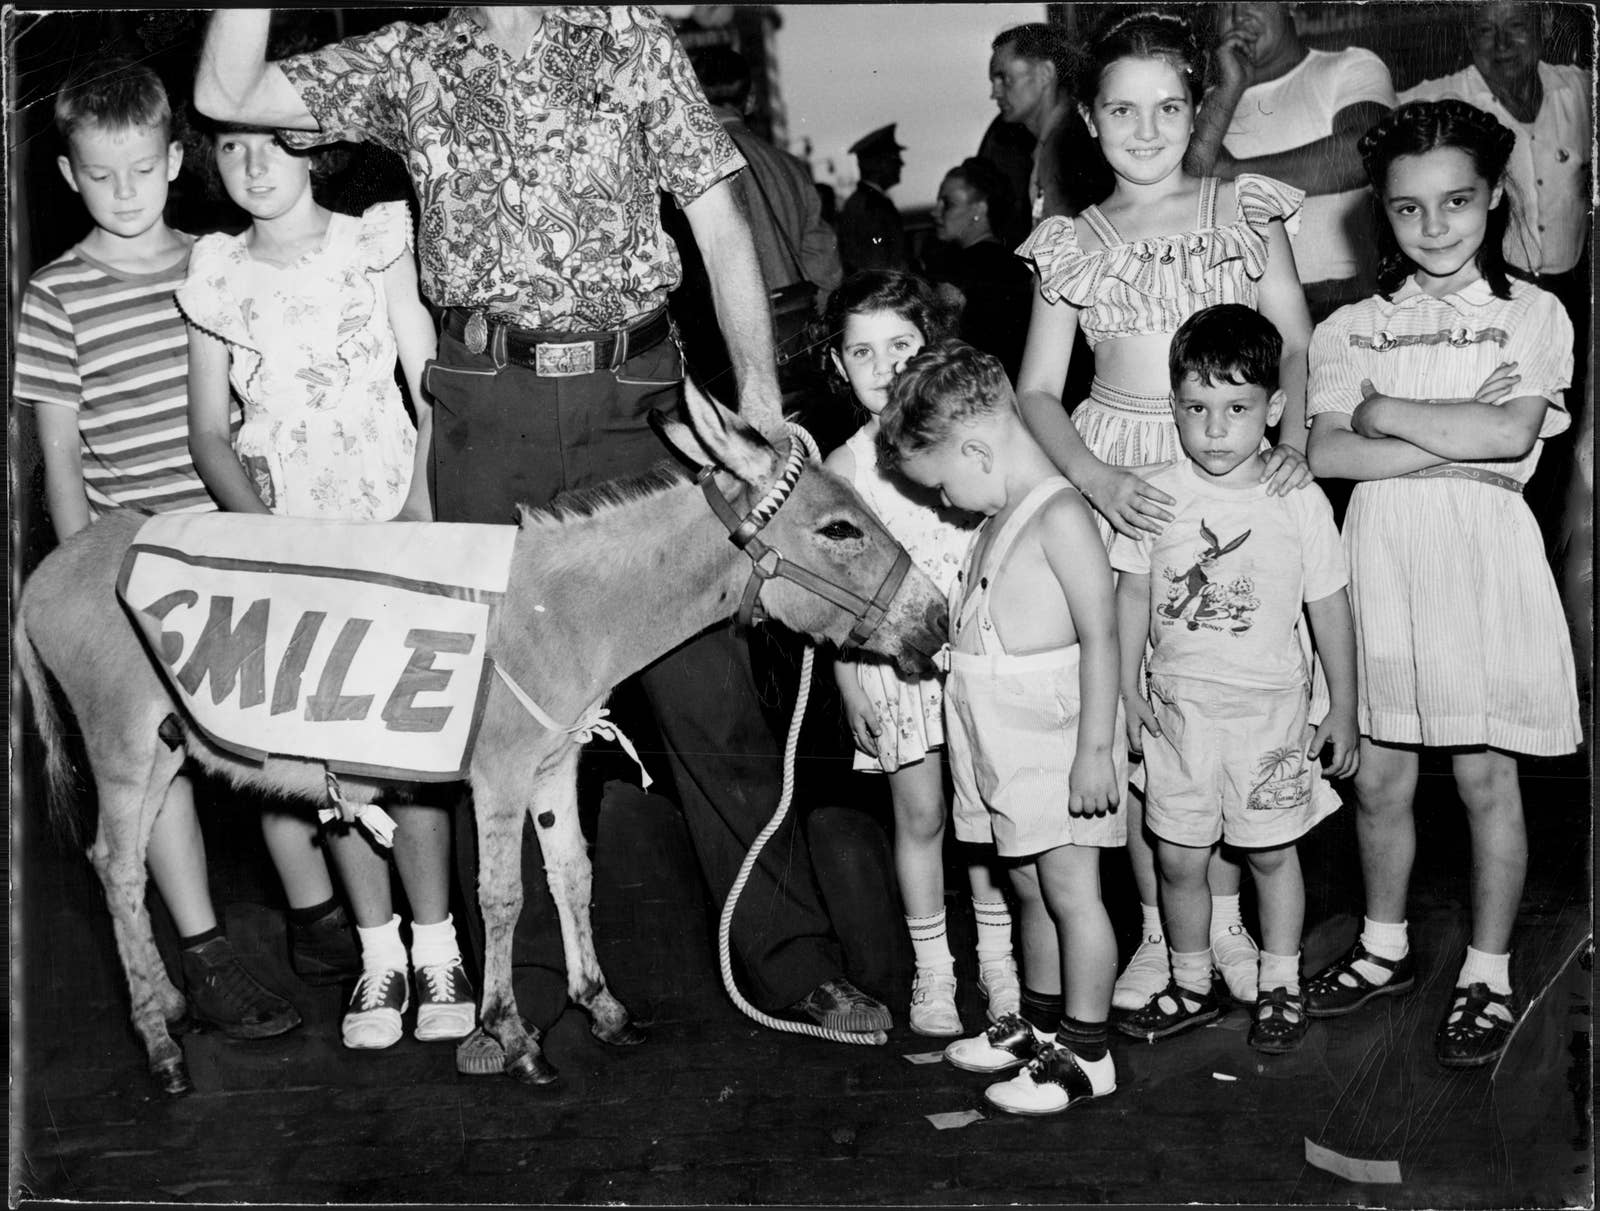 A donkey with a sign that says smile next to a group of kids, most of whom are not smiling